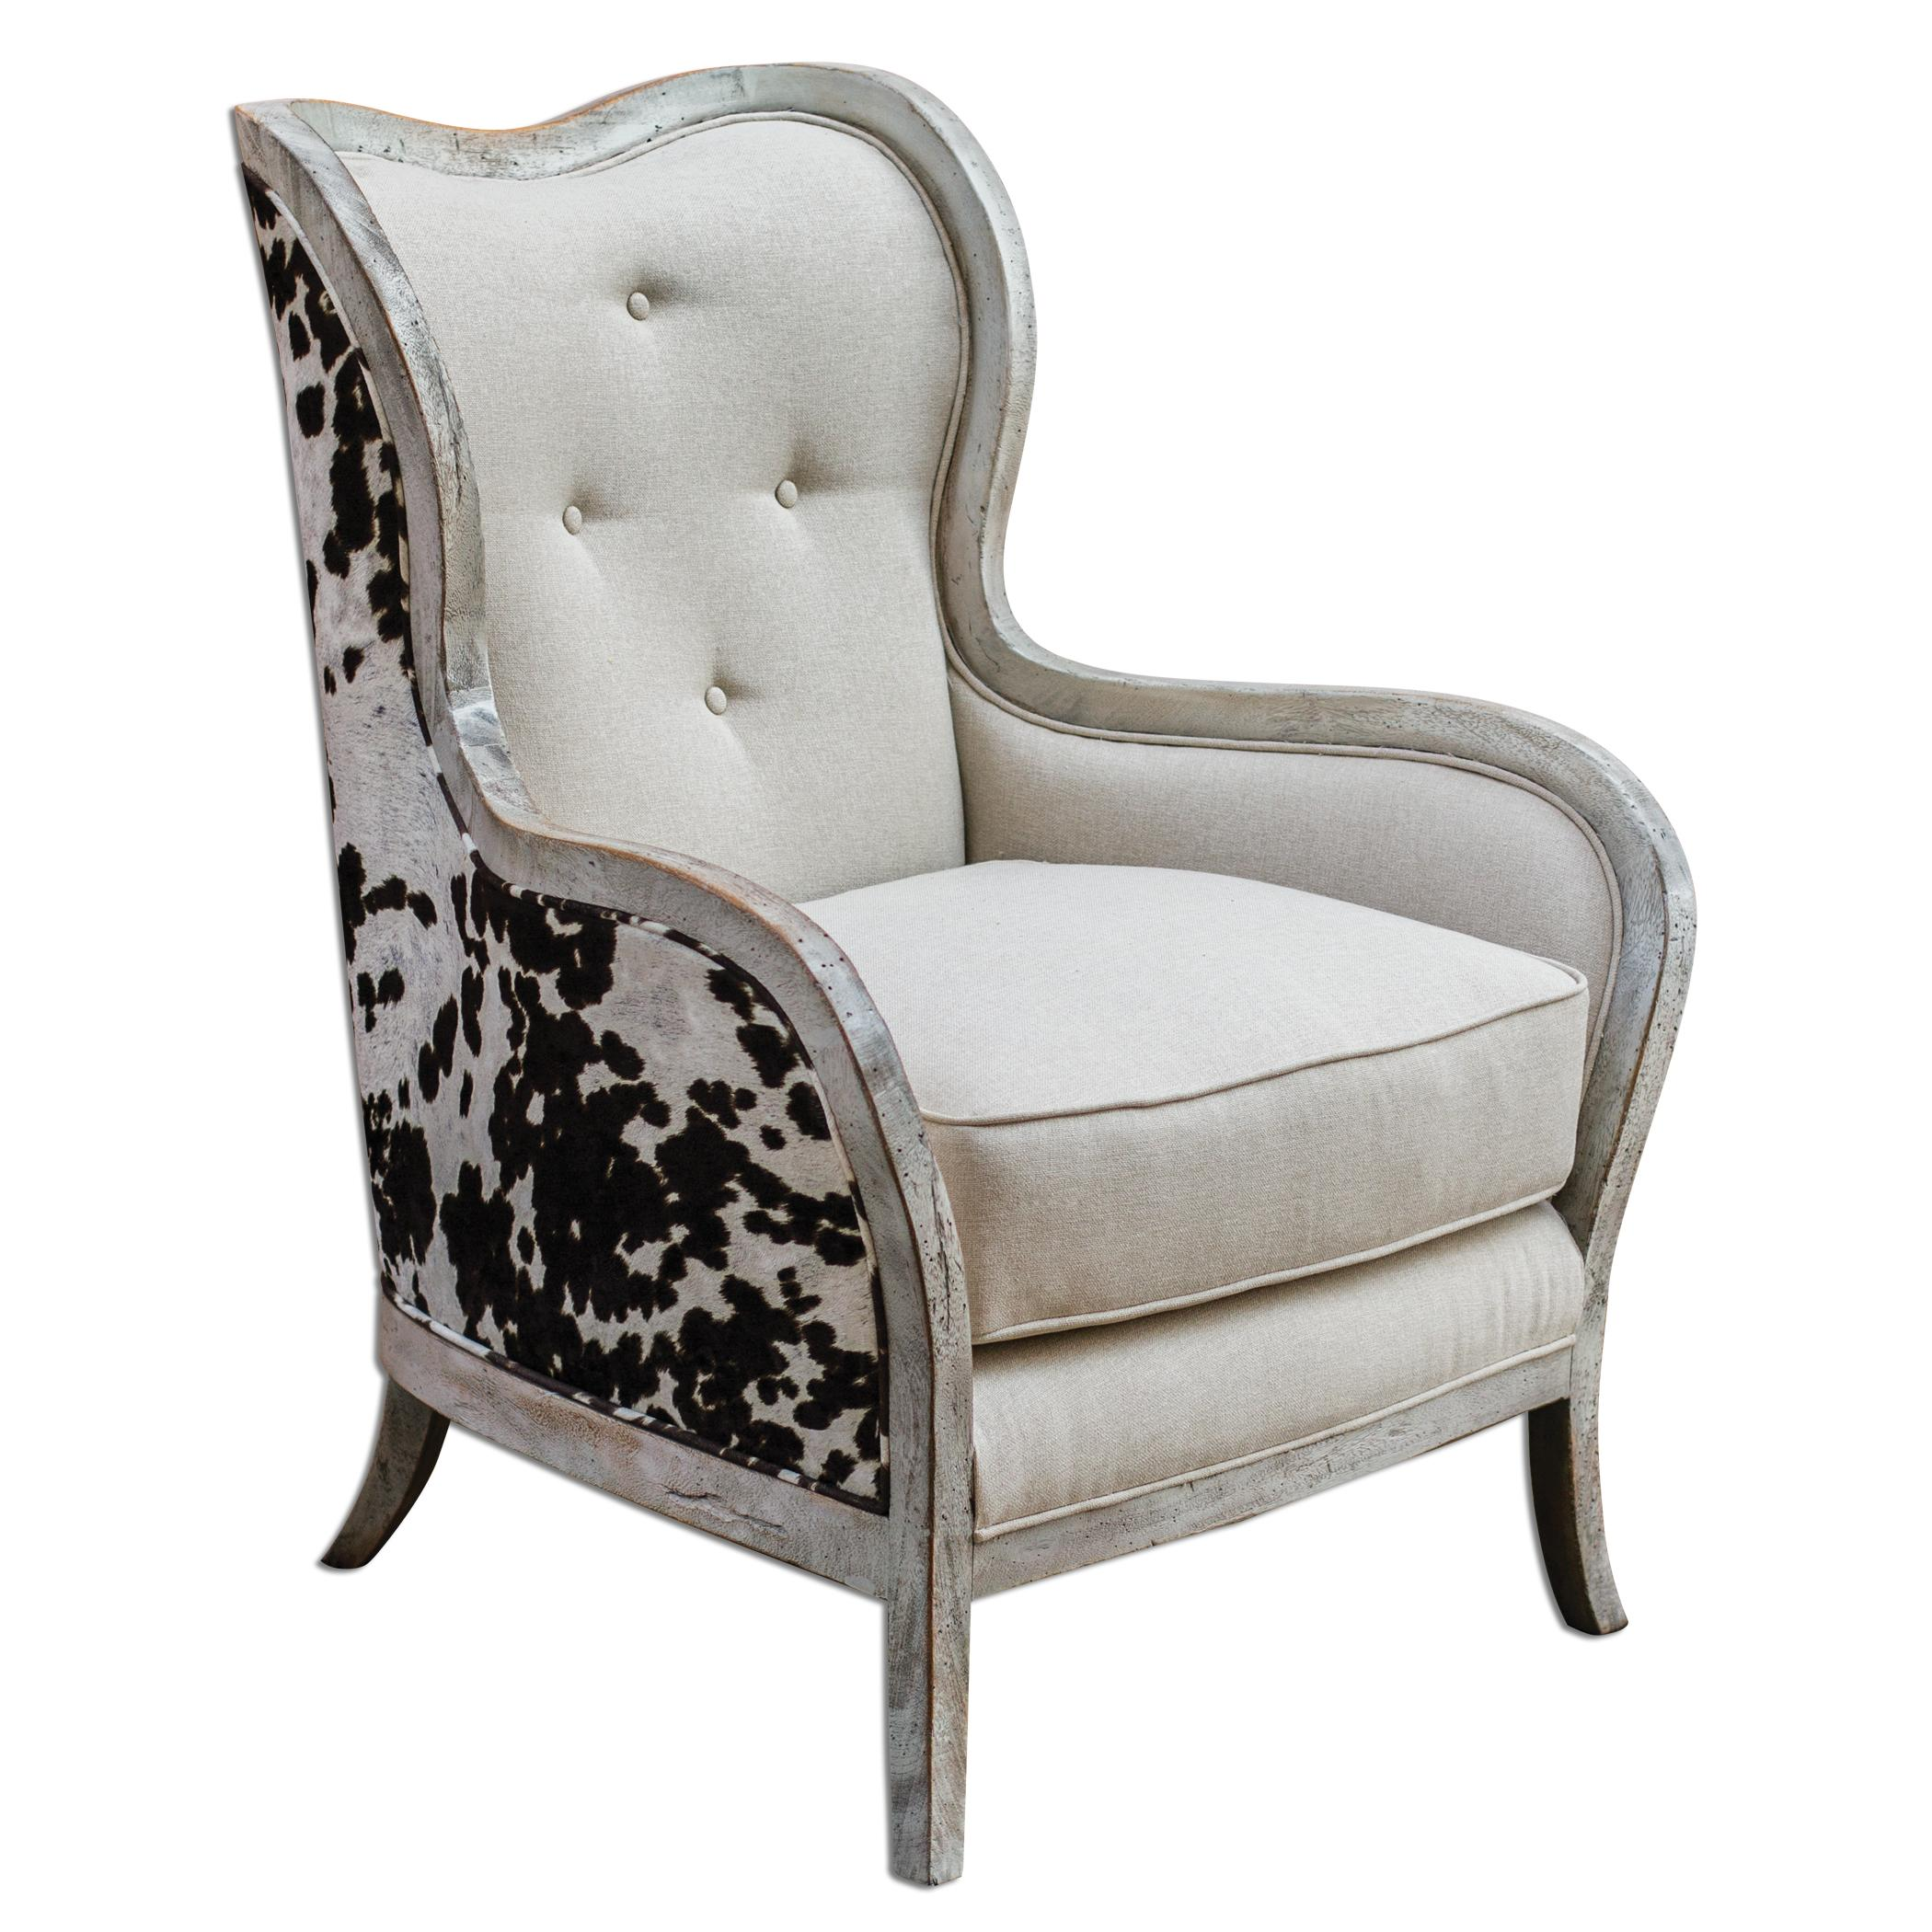 Accent Furniture - Accent Chairs Chalina High Back Arm Chair by Uttermost at Furniture Superstore - Rochester, MN